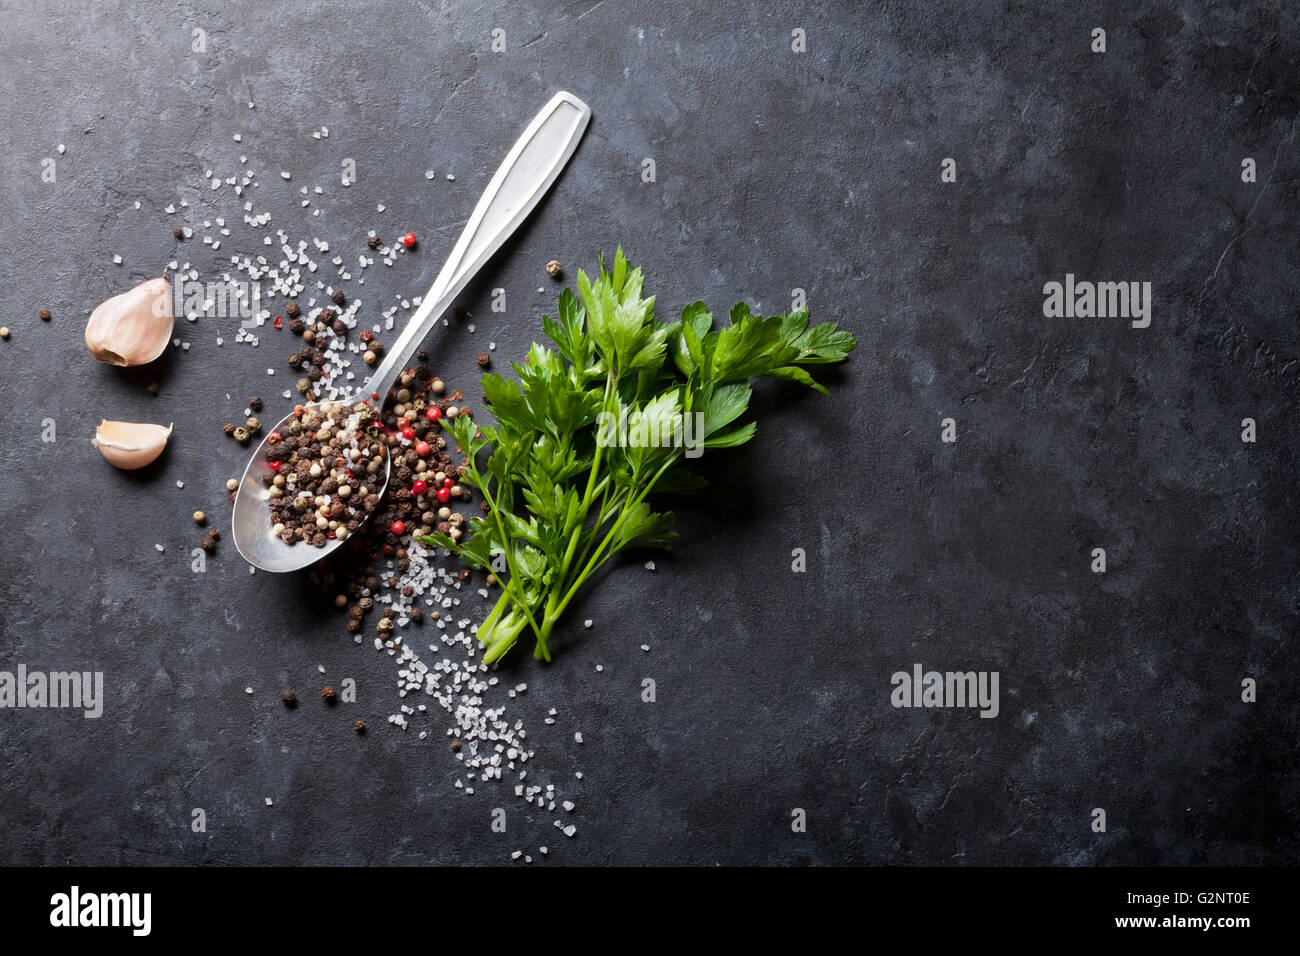 Garlic, black, white and red pepper and salt spices in spoon, parsley herb. Top view with copy space - Stock Image